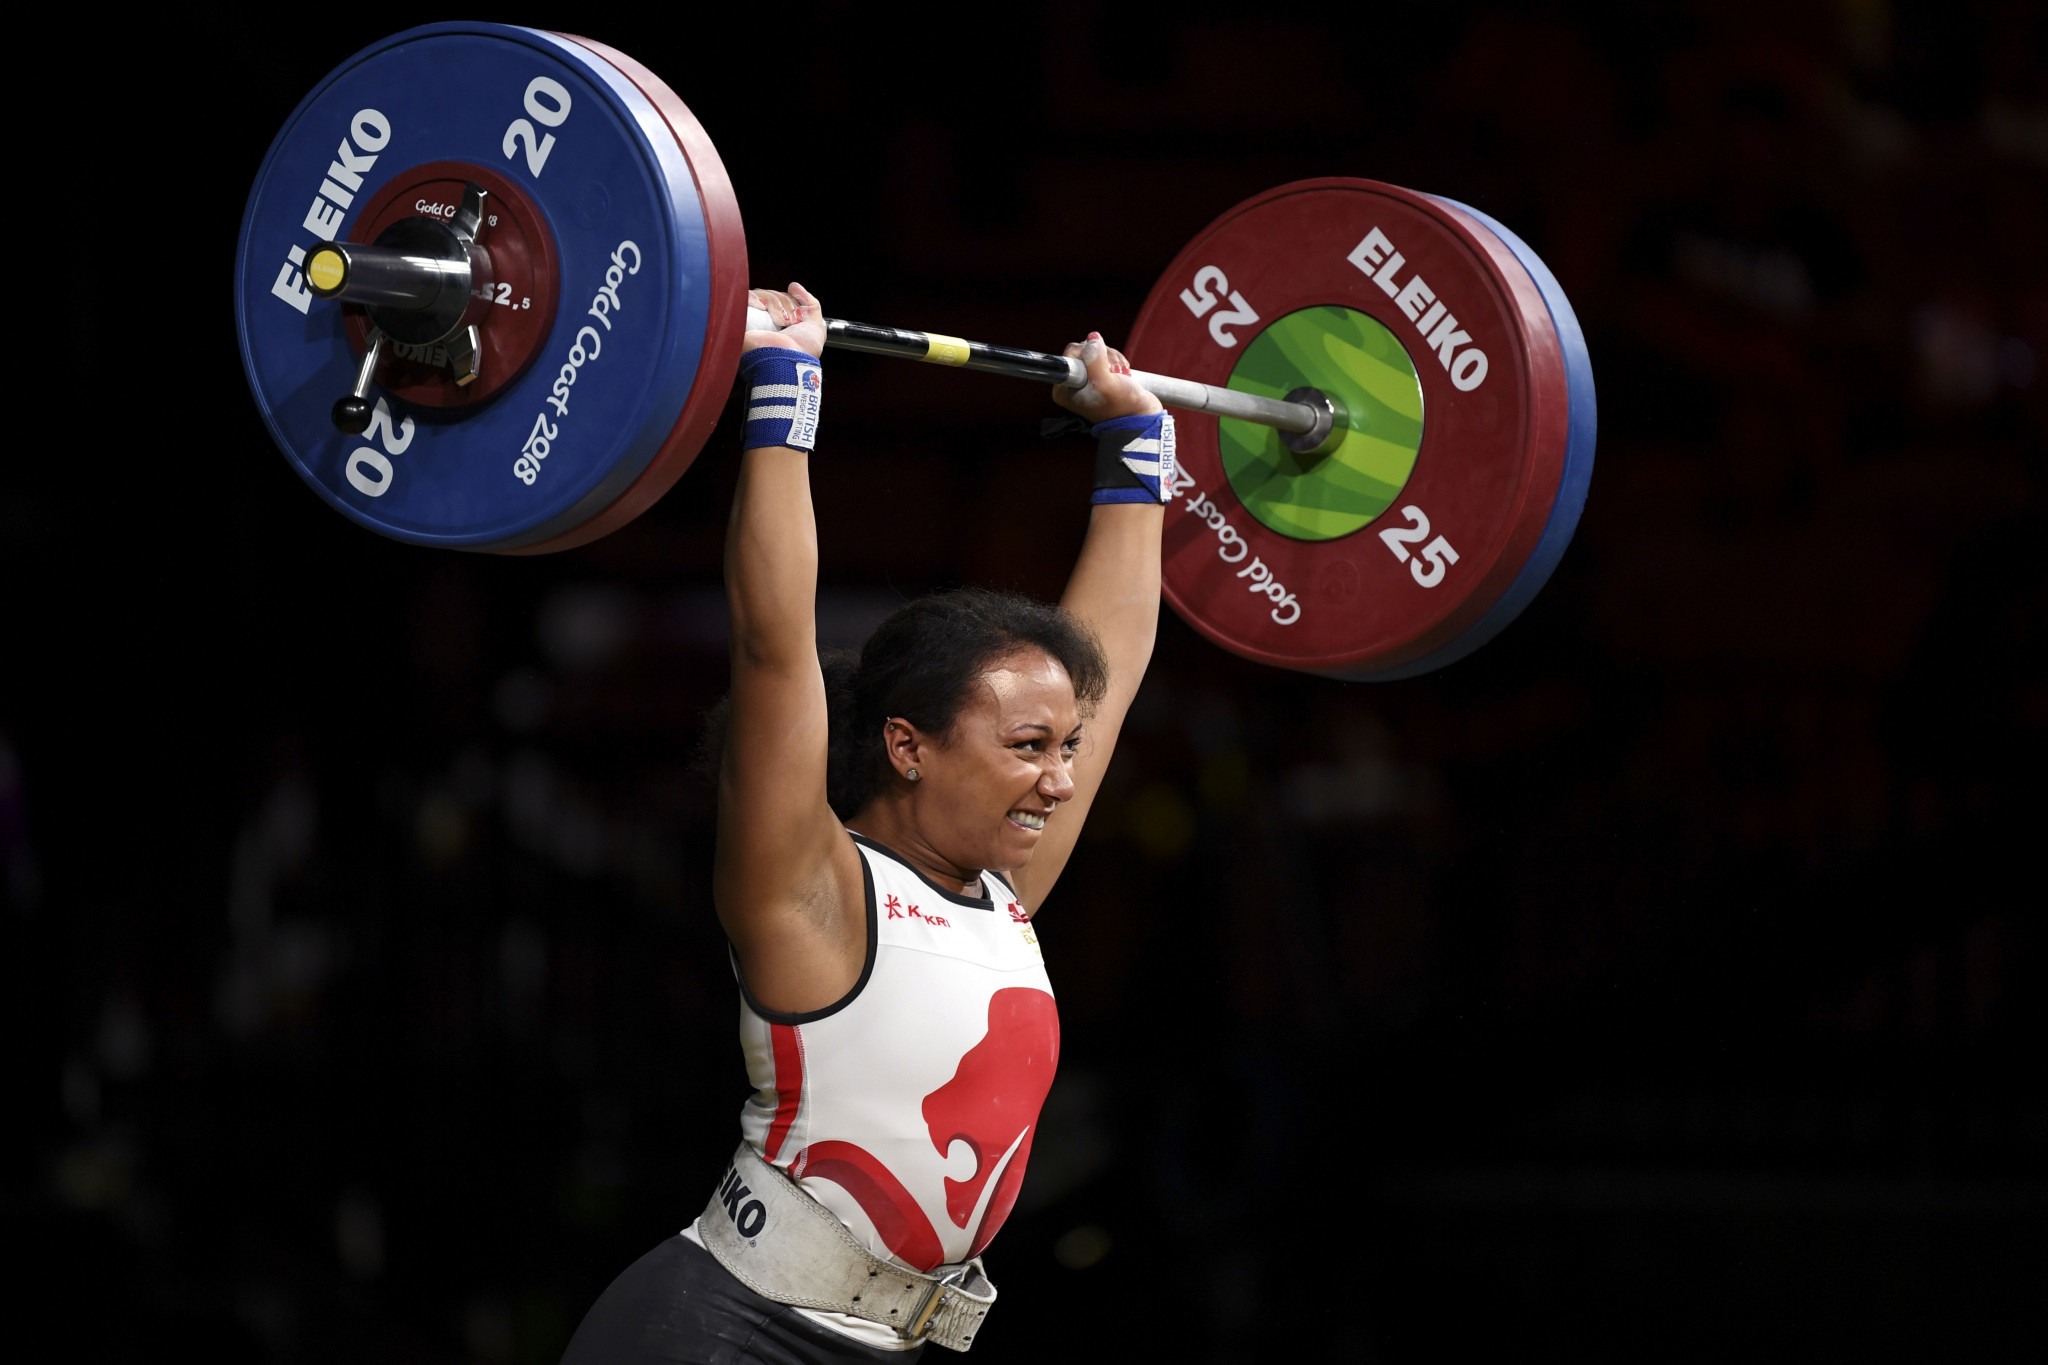 British lifter Zoe Smith triumphed at Ricoh Arena ©Getty Images